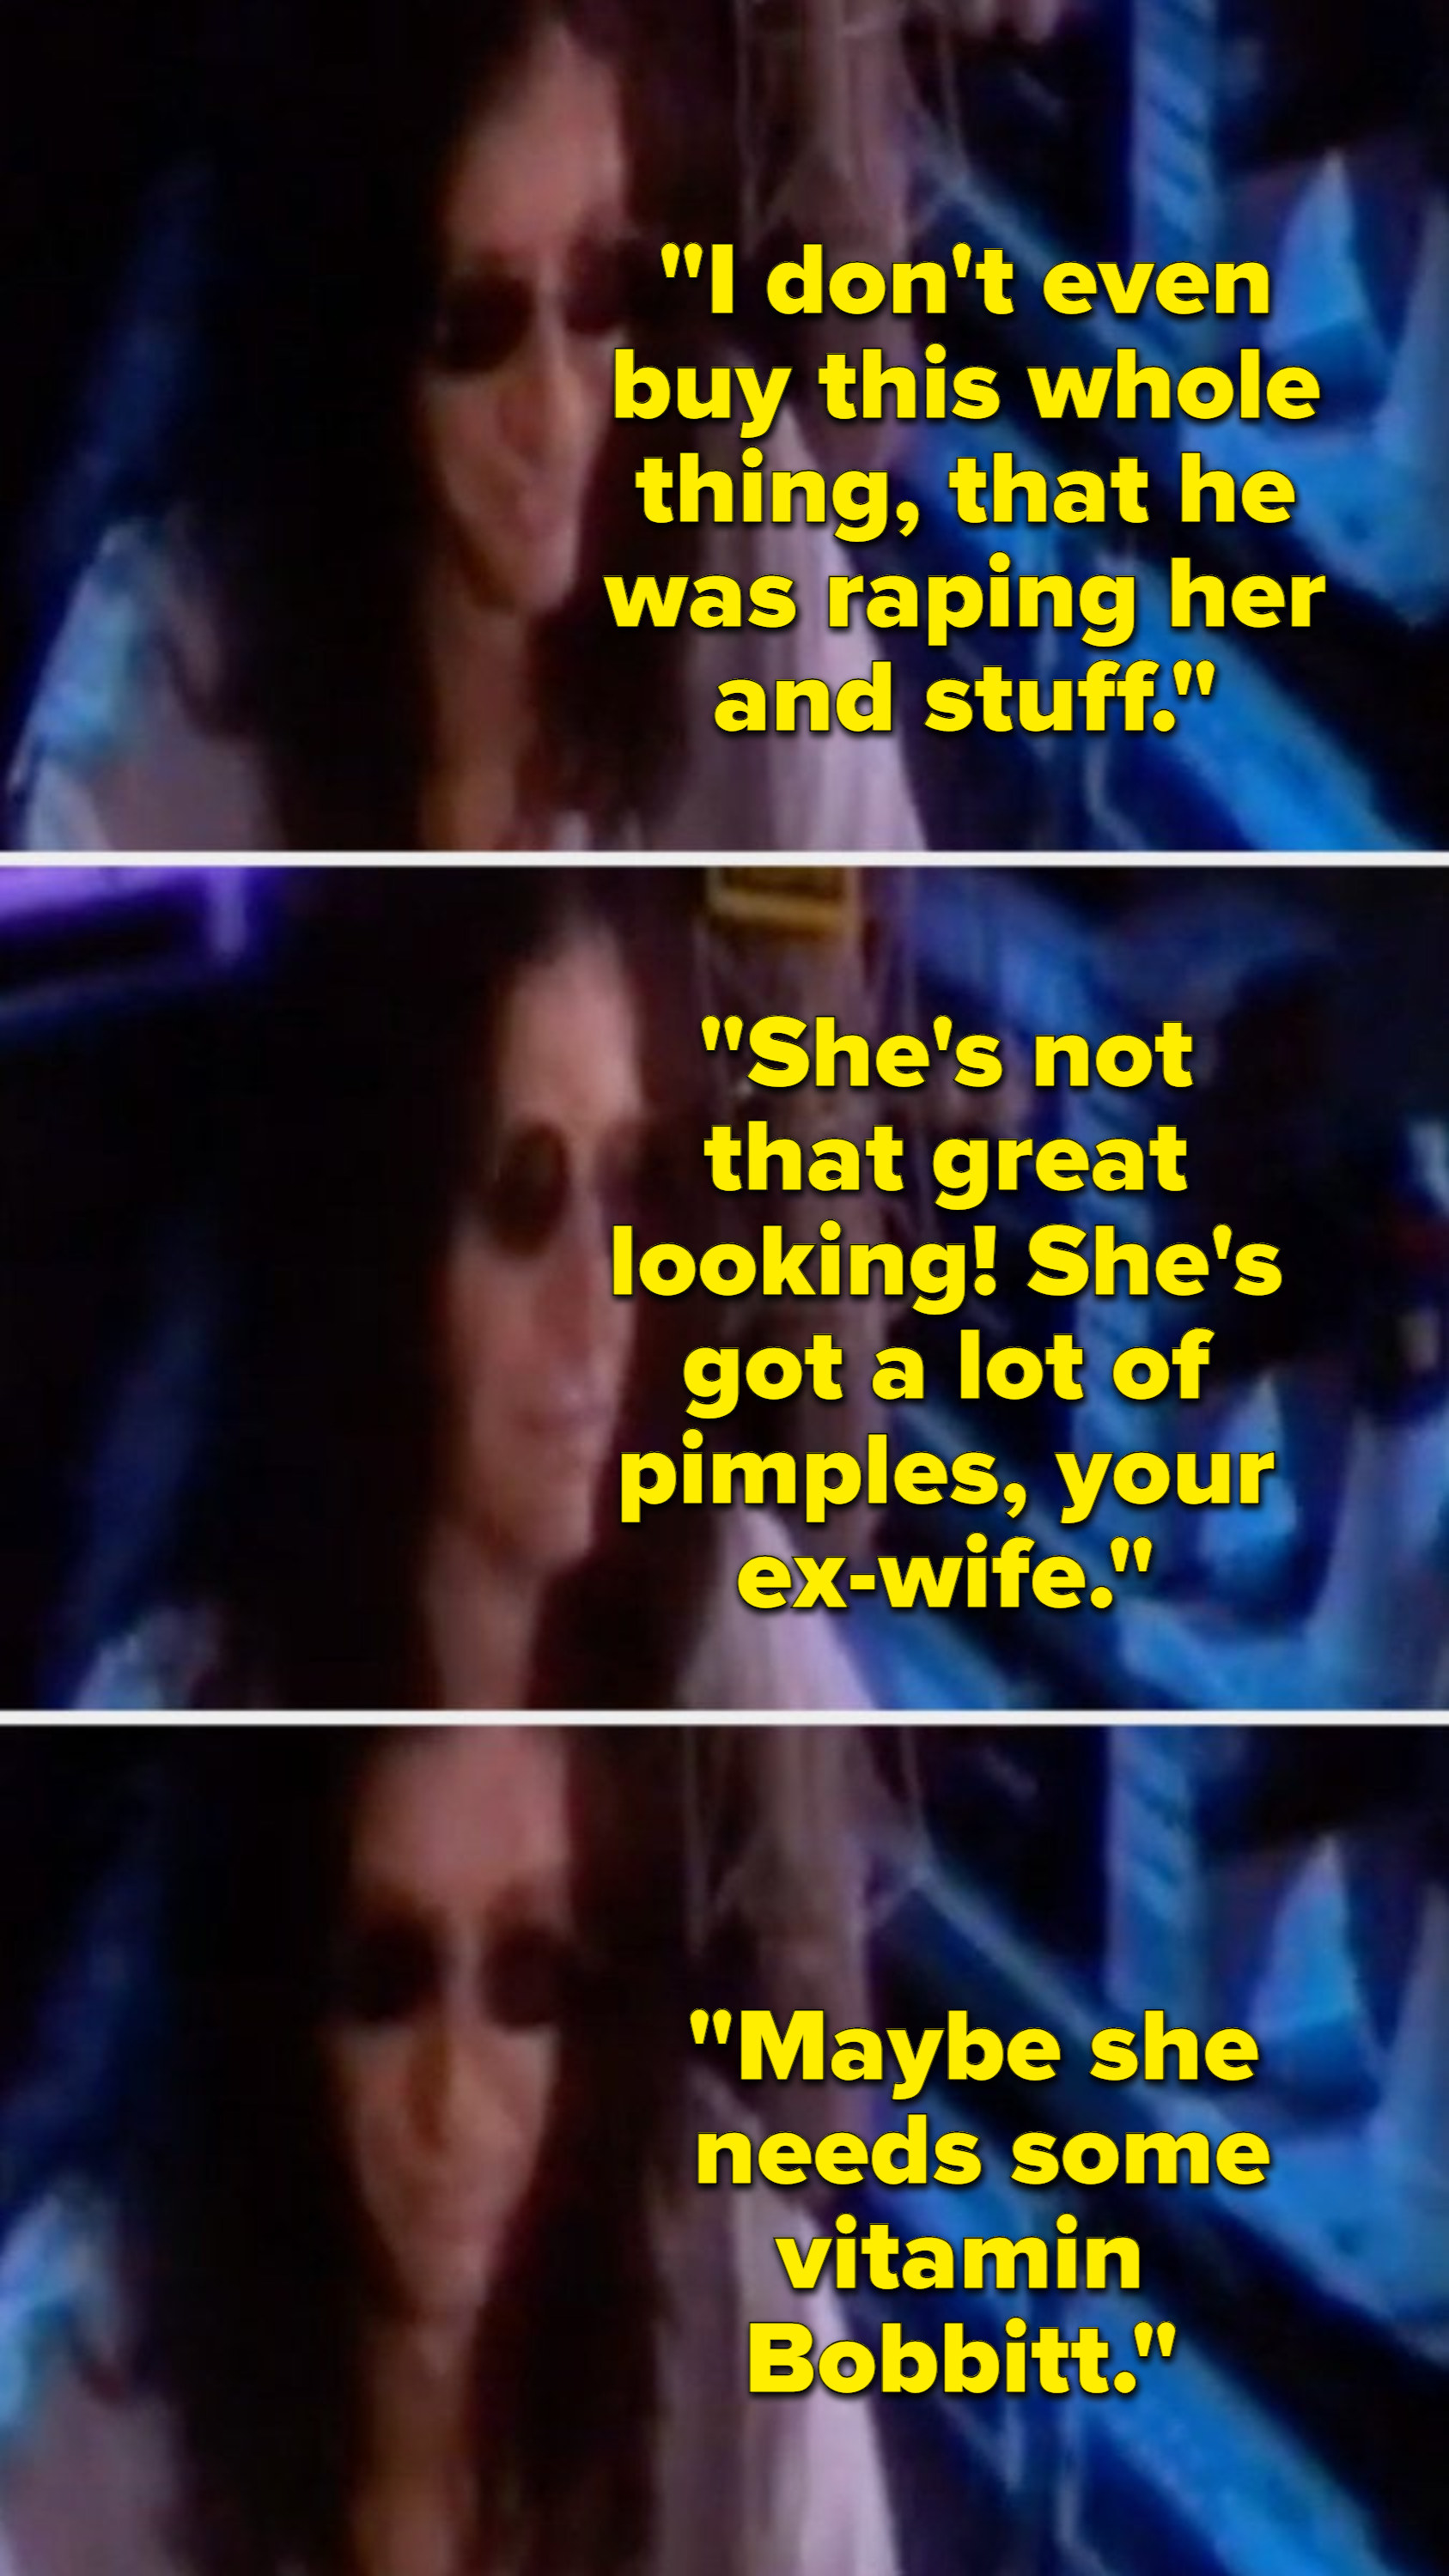 Howard stern saying he doesn't believe that john raped lorena, because she's not that good-looking